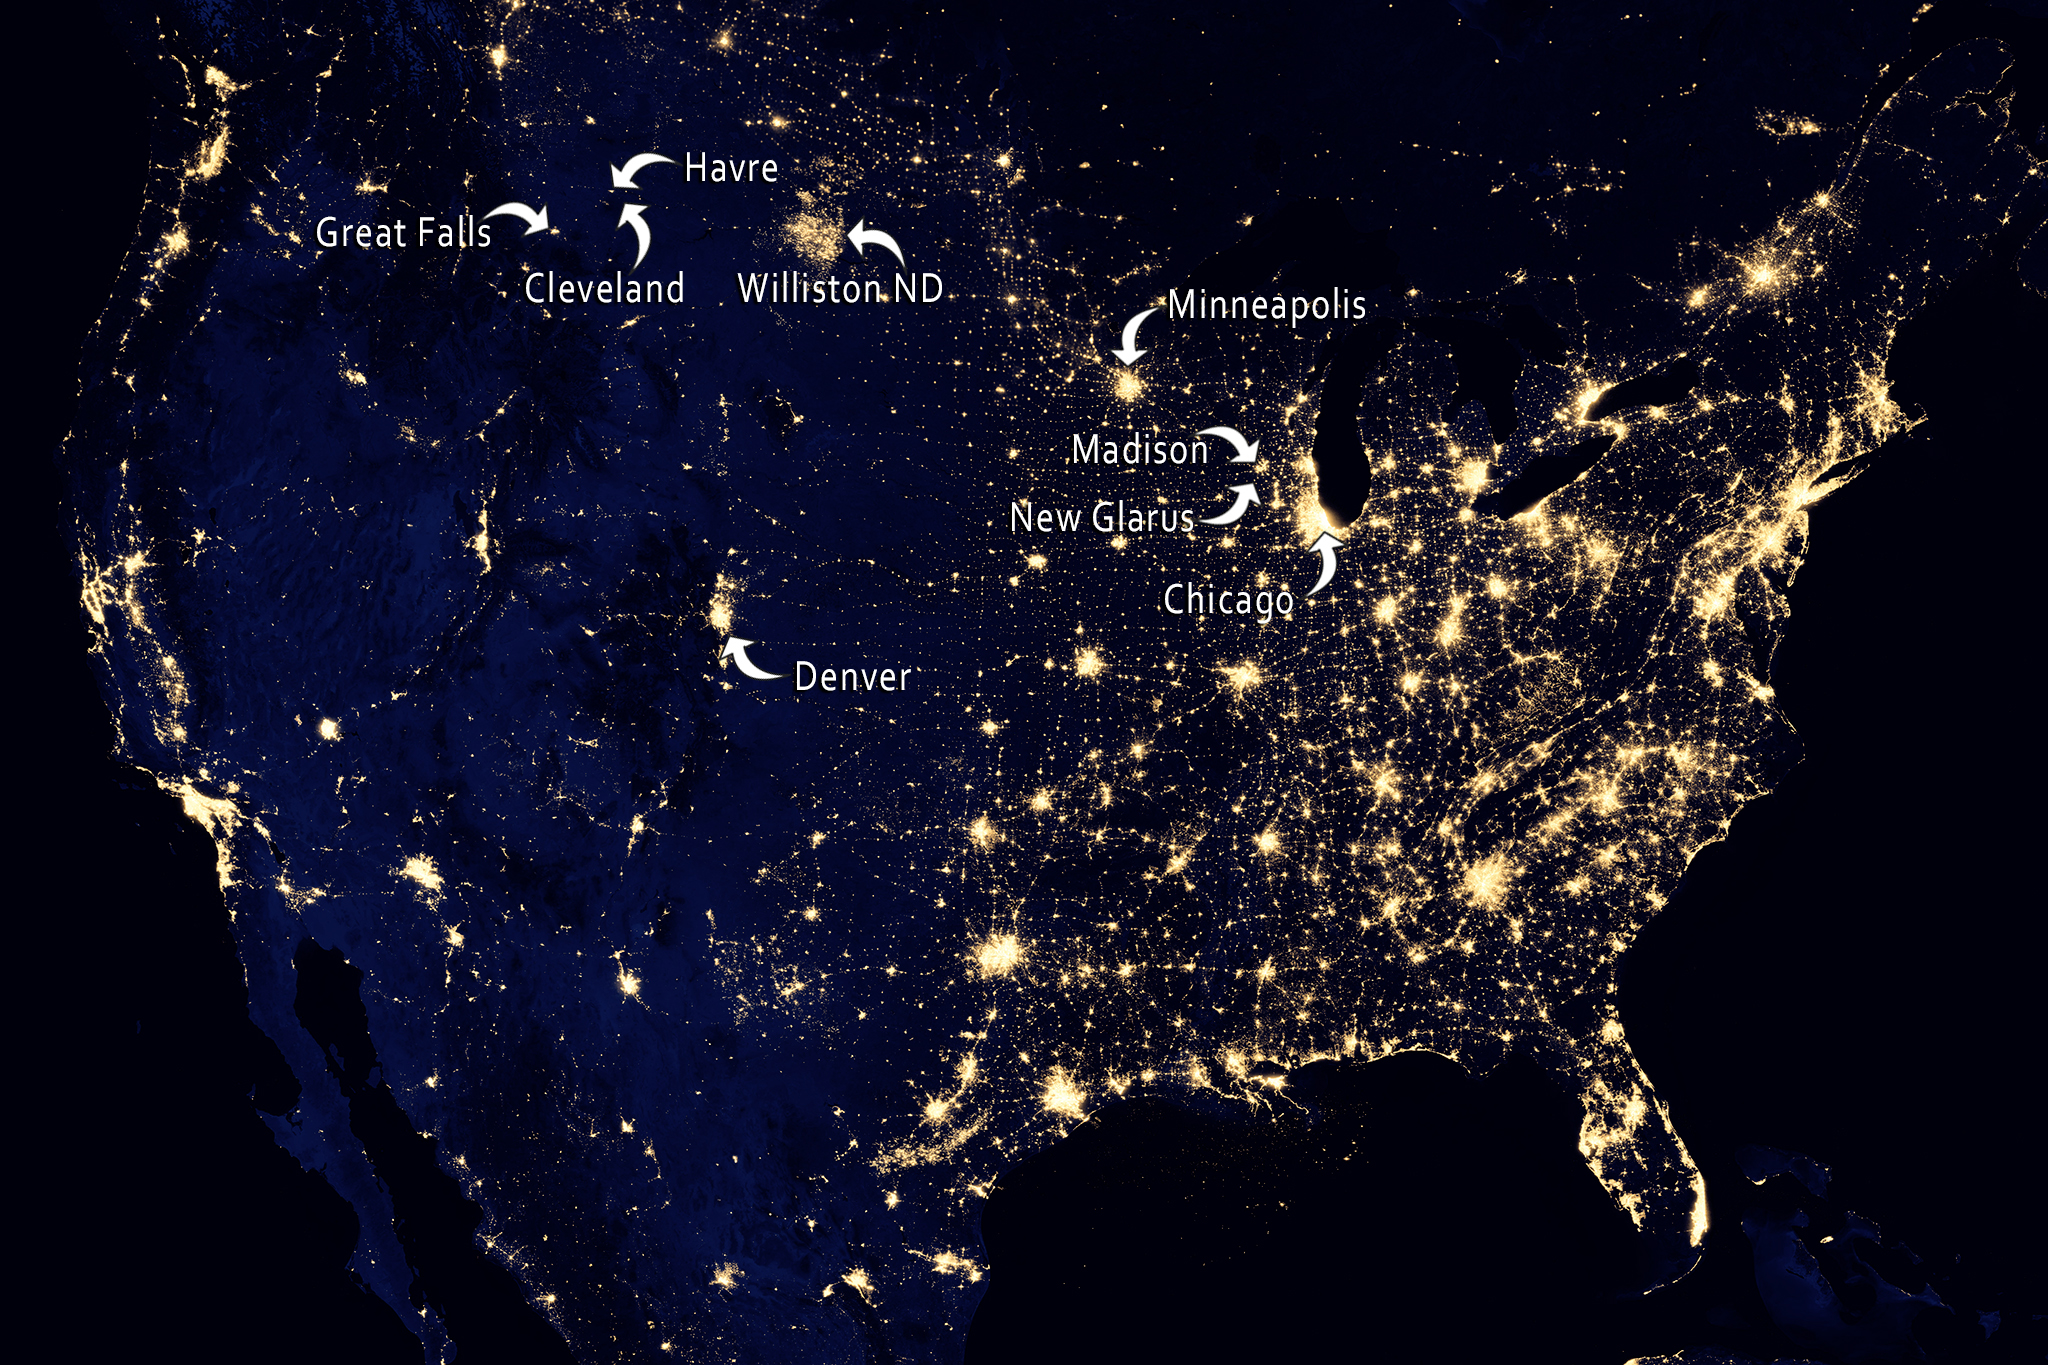 """NASA image acquired April 18 - October 23, 2012This image of the United States of America at night is a composite assembled from data acquired by the Suomi NPP satellite in April and October 2012. The image was made possible by the new satellite's """"day-night band"""" of the Visible Infrared Imaging Radiometer Suite (VIIRS), which detects light in a range of wavelengths from green to near-infrared and uses filtering techniques to observe dim signals such as city lights, gas flares, auroras, wildfires, and reflected moonlight.""""Nighttime light is the most interesting data that I've had a chance to work with,"""" says Chris Elvidge, who leads the Earth Observation Group at NOAA's National Geophysical Data Center. """"I'm always amazed at what city light images show us about human activity."""" His research group has been approached by scientists seeking to model the distribution of carbon dioxide emissions from fossil fuels and to monitor the activity of commercial fishing fleets. Biologists have examined how urban growth has fragmented animal habitat. Elvidge even learned once of a study of dictatorships in various parts of the world and how nighttime lights had a tendency to expand in the dictator's hometown or province.Named for satellite meteorology pioneer Verner Suomi, NPP flies over any given point on Earth's surface twice each day at roughly 1:30 a.m. and p.m. The polar-orbiting satellite flies 824 kilometers (512 miles) above the surface, sending its data once per orbit to a ground station in Svalbard, Norway, and continuously to local direct broadcast users distributed around the world. Suomi NPP is managed by NASA with operational support from NOAA and its Joint Polar Satellite System, which manages the satellite's ground system.NASA Earth Observatory image by Robert Simmon, using Suomi NPP VIIRS data provided courtesy of Chris Elvidge (NOAA National Geophysical Data Center). Suomi NPP is the result of a partnership between NASA, NOAA, and t"""